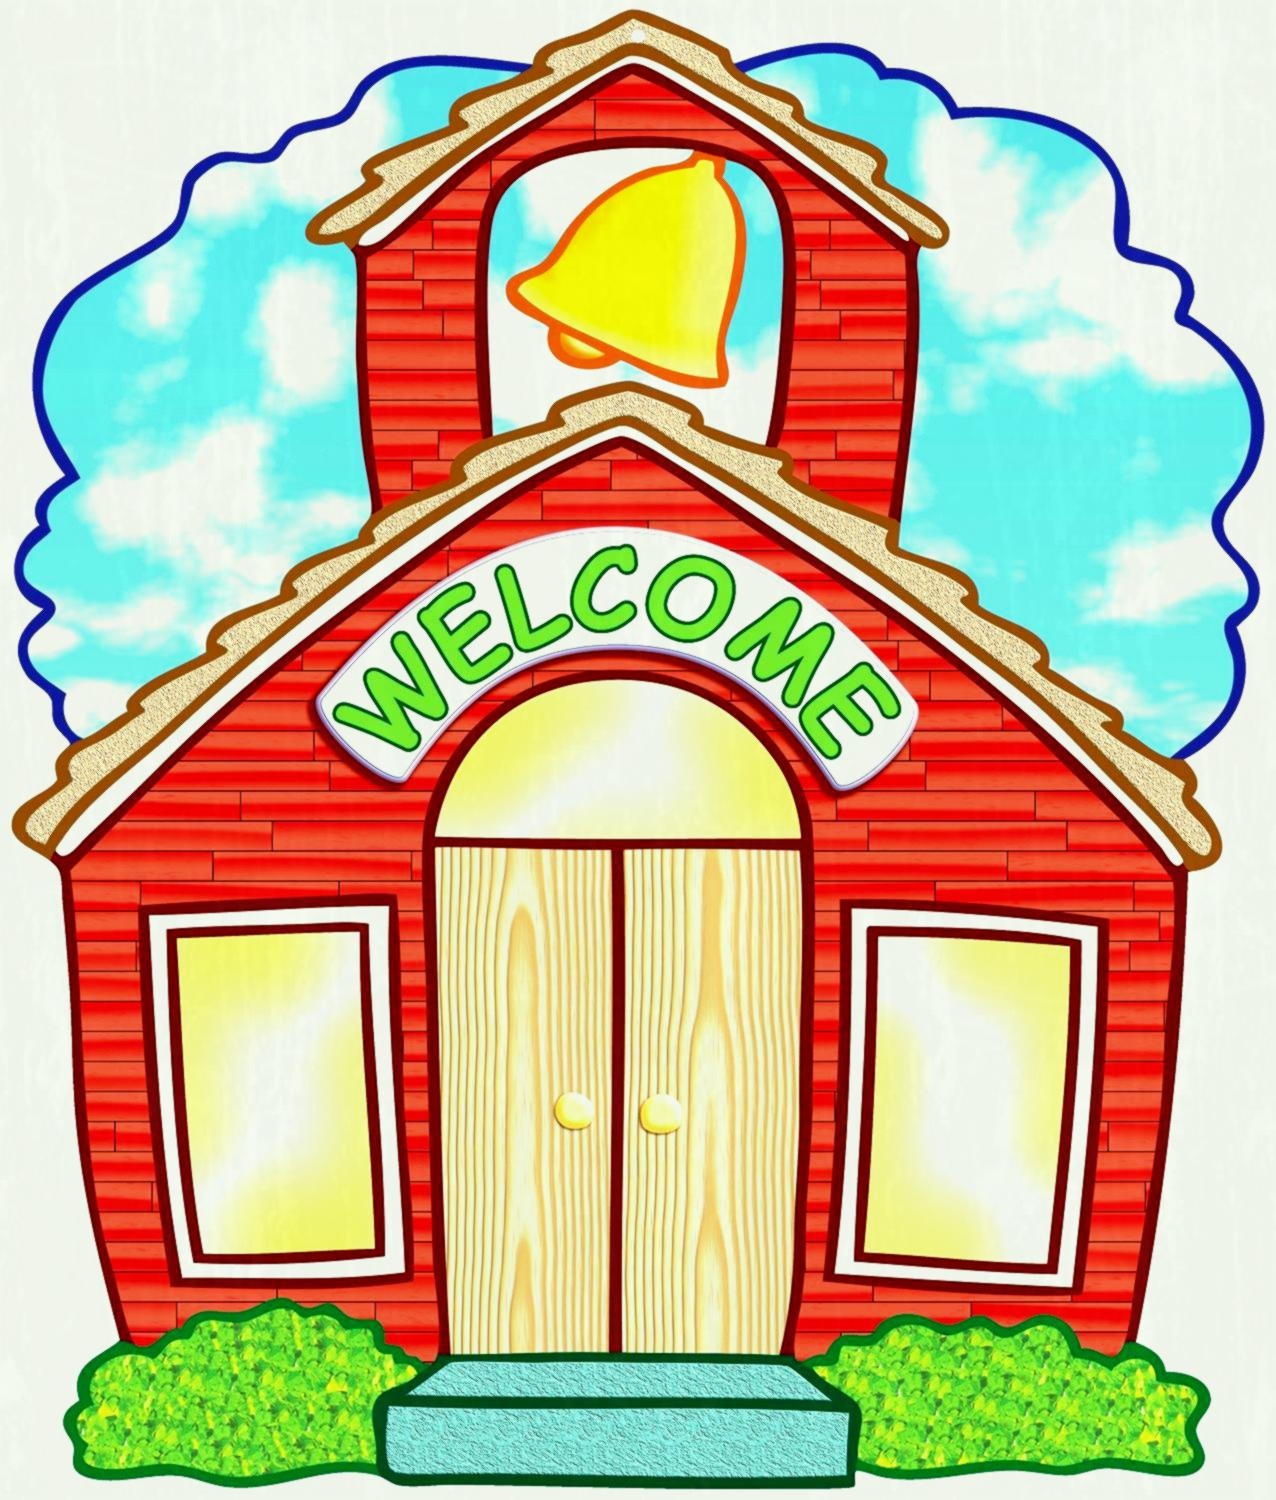 welcome back to school clipart at getdrawings com free for rh getdrawings com school clipart free download school clipart picture